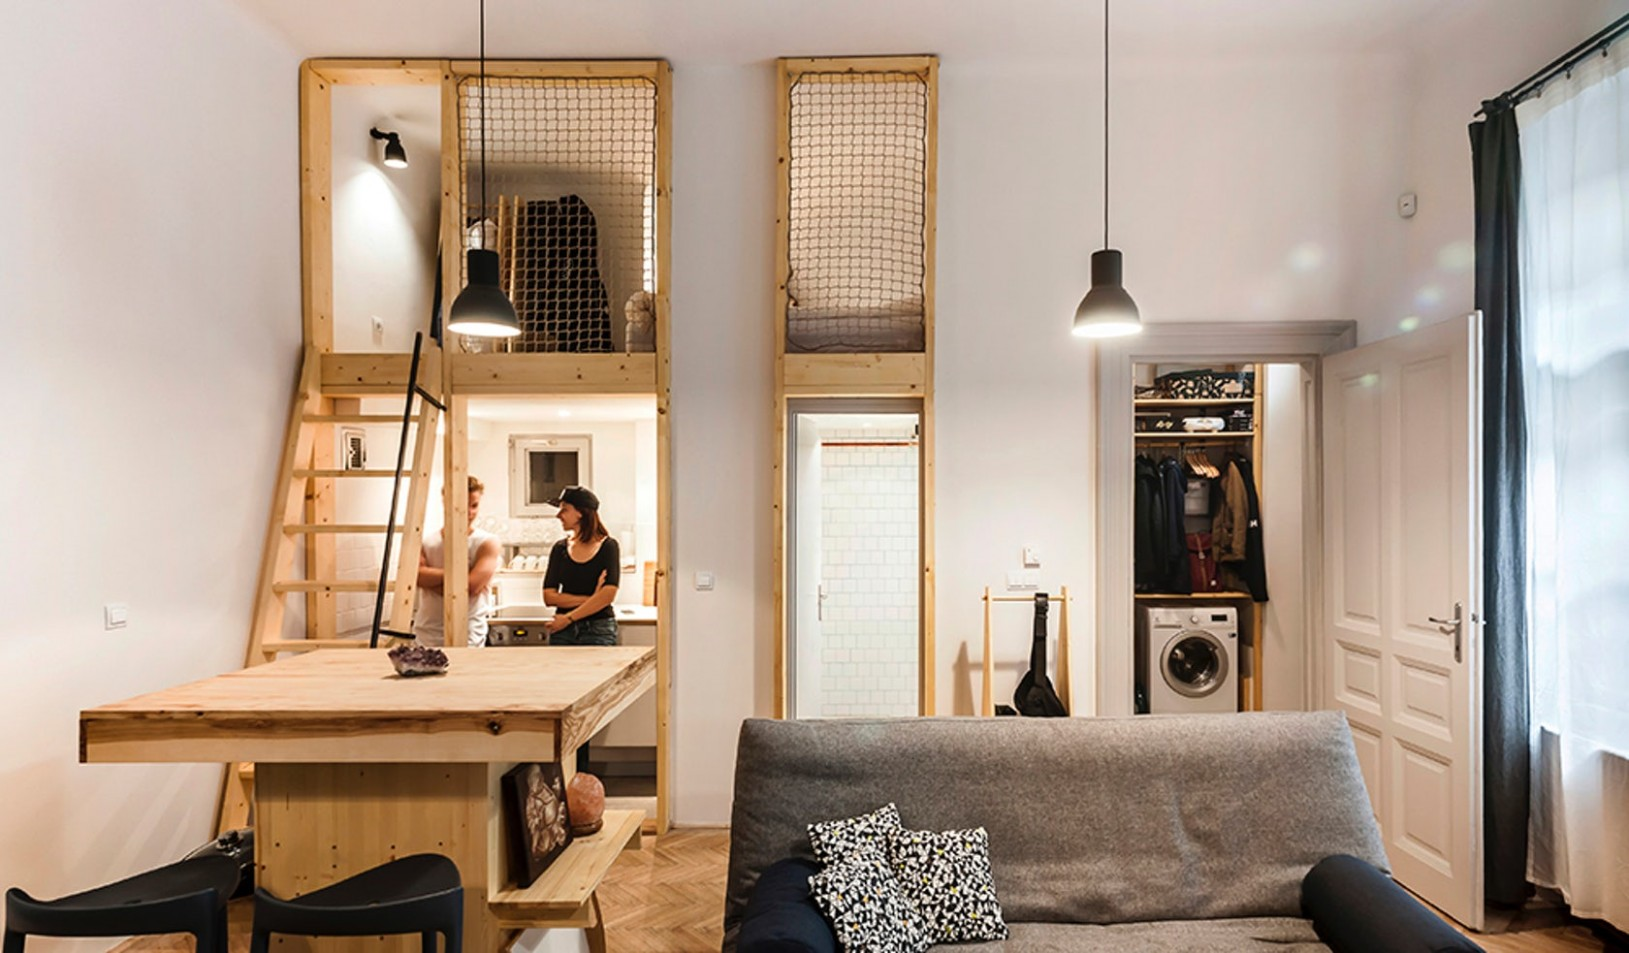 Architectural Drawings: 12 Clever Plans for Tiny Apartments  - Apartment Design Plans